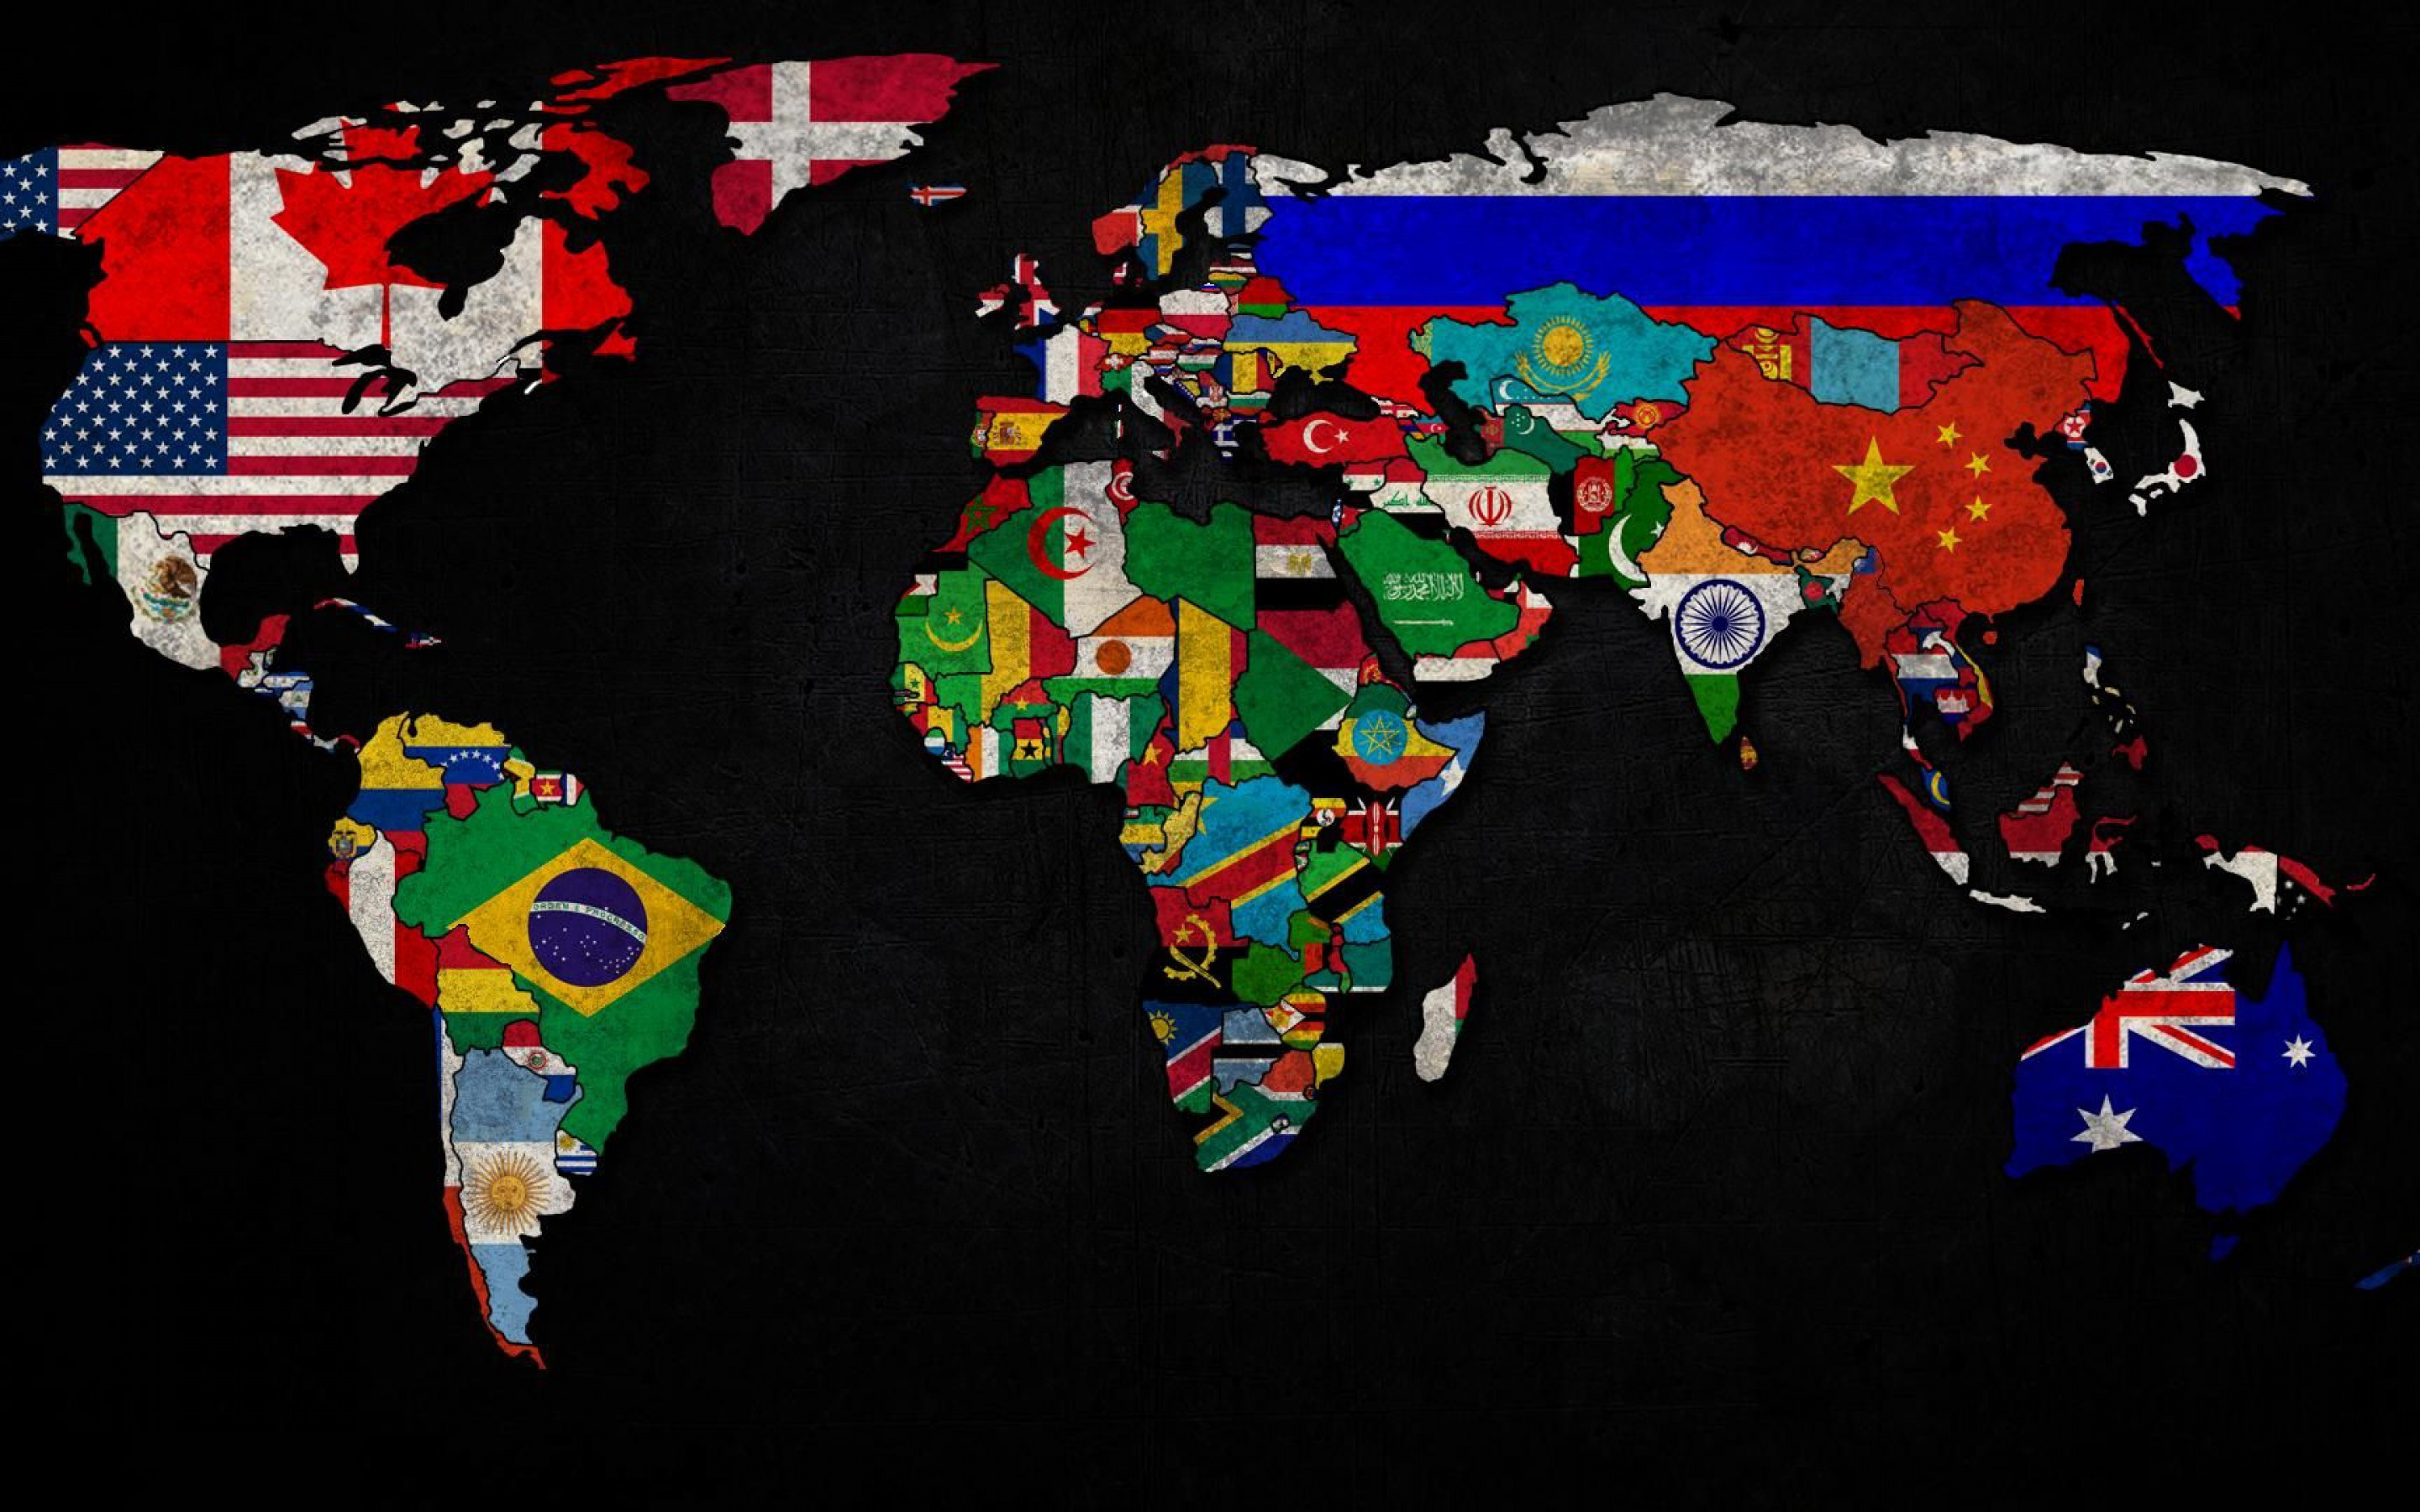 World map screensaver wallpaper 56 images 2880x1800 34 free political world map for desktop wallpaper and free use gumiabroncs Image collections